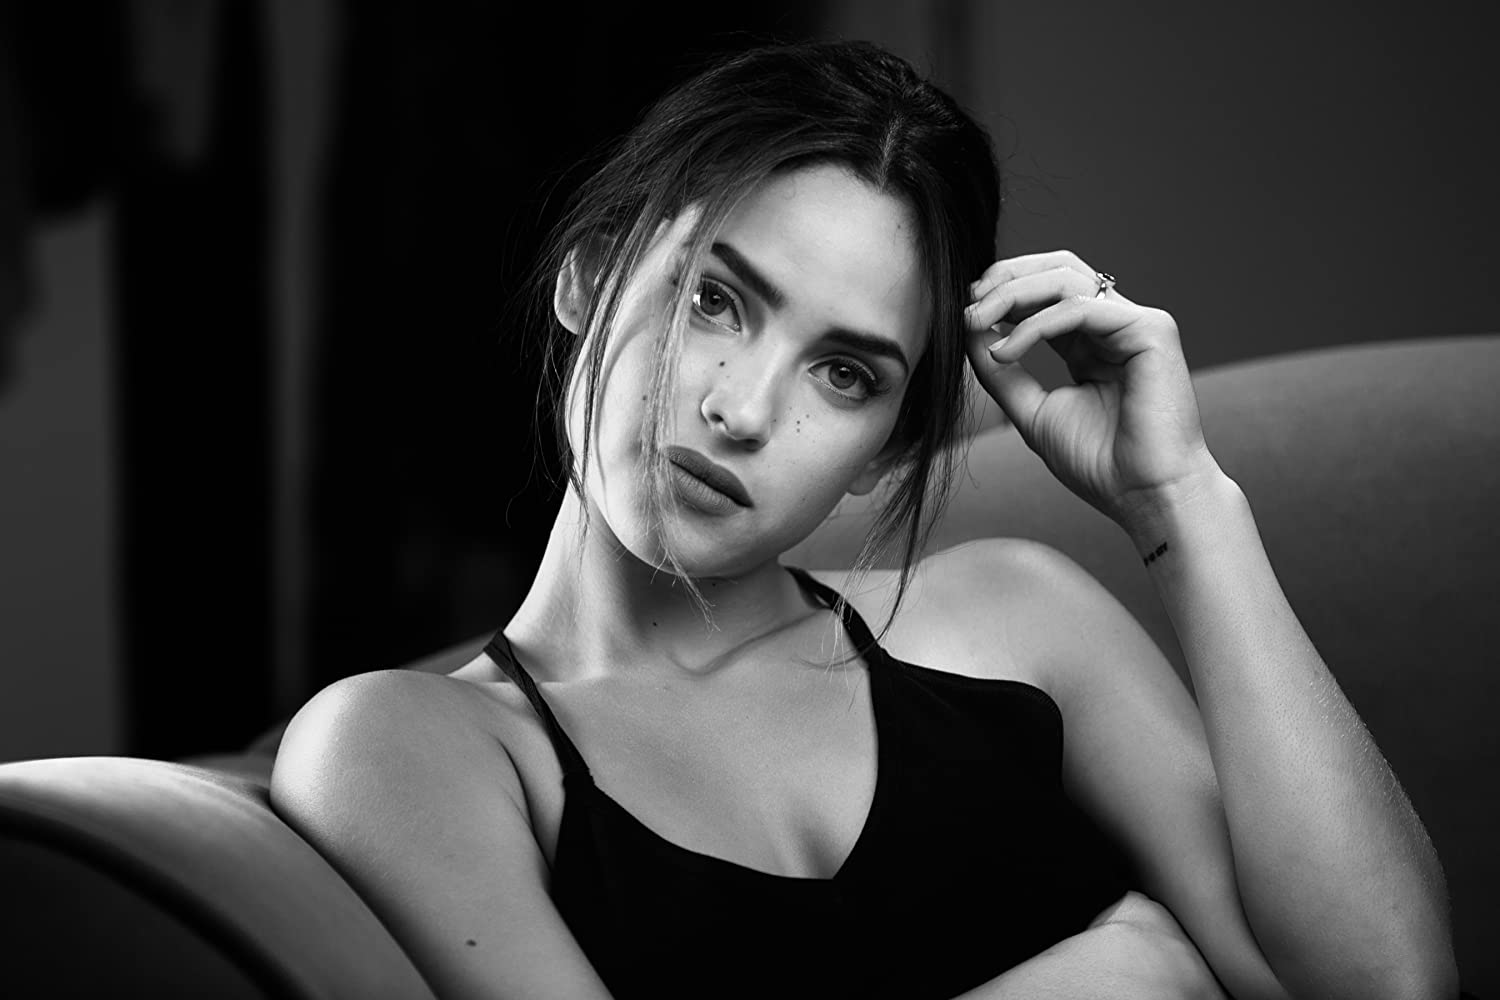 Photo of Rogue One: A Star Wars Story prequel cast Adria Arjona in Cassian Andor series for Disney+!